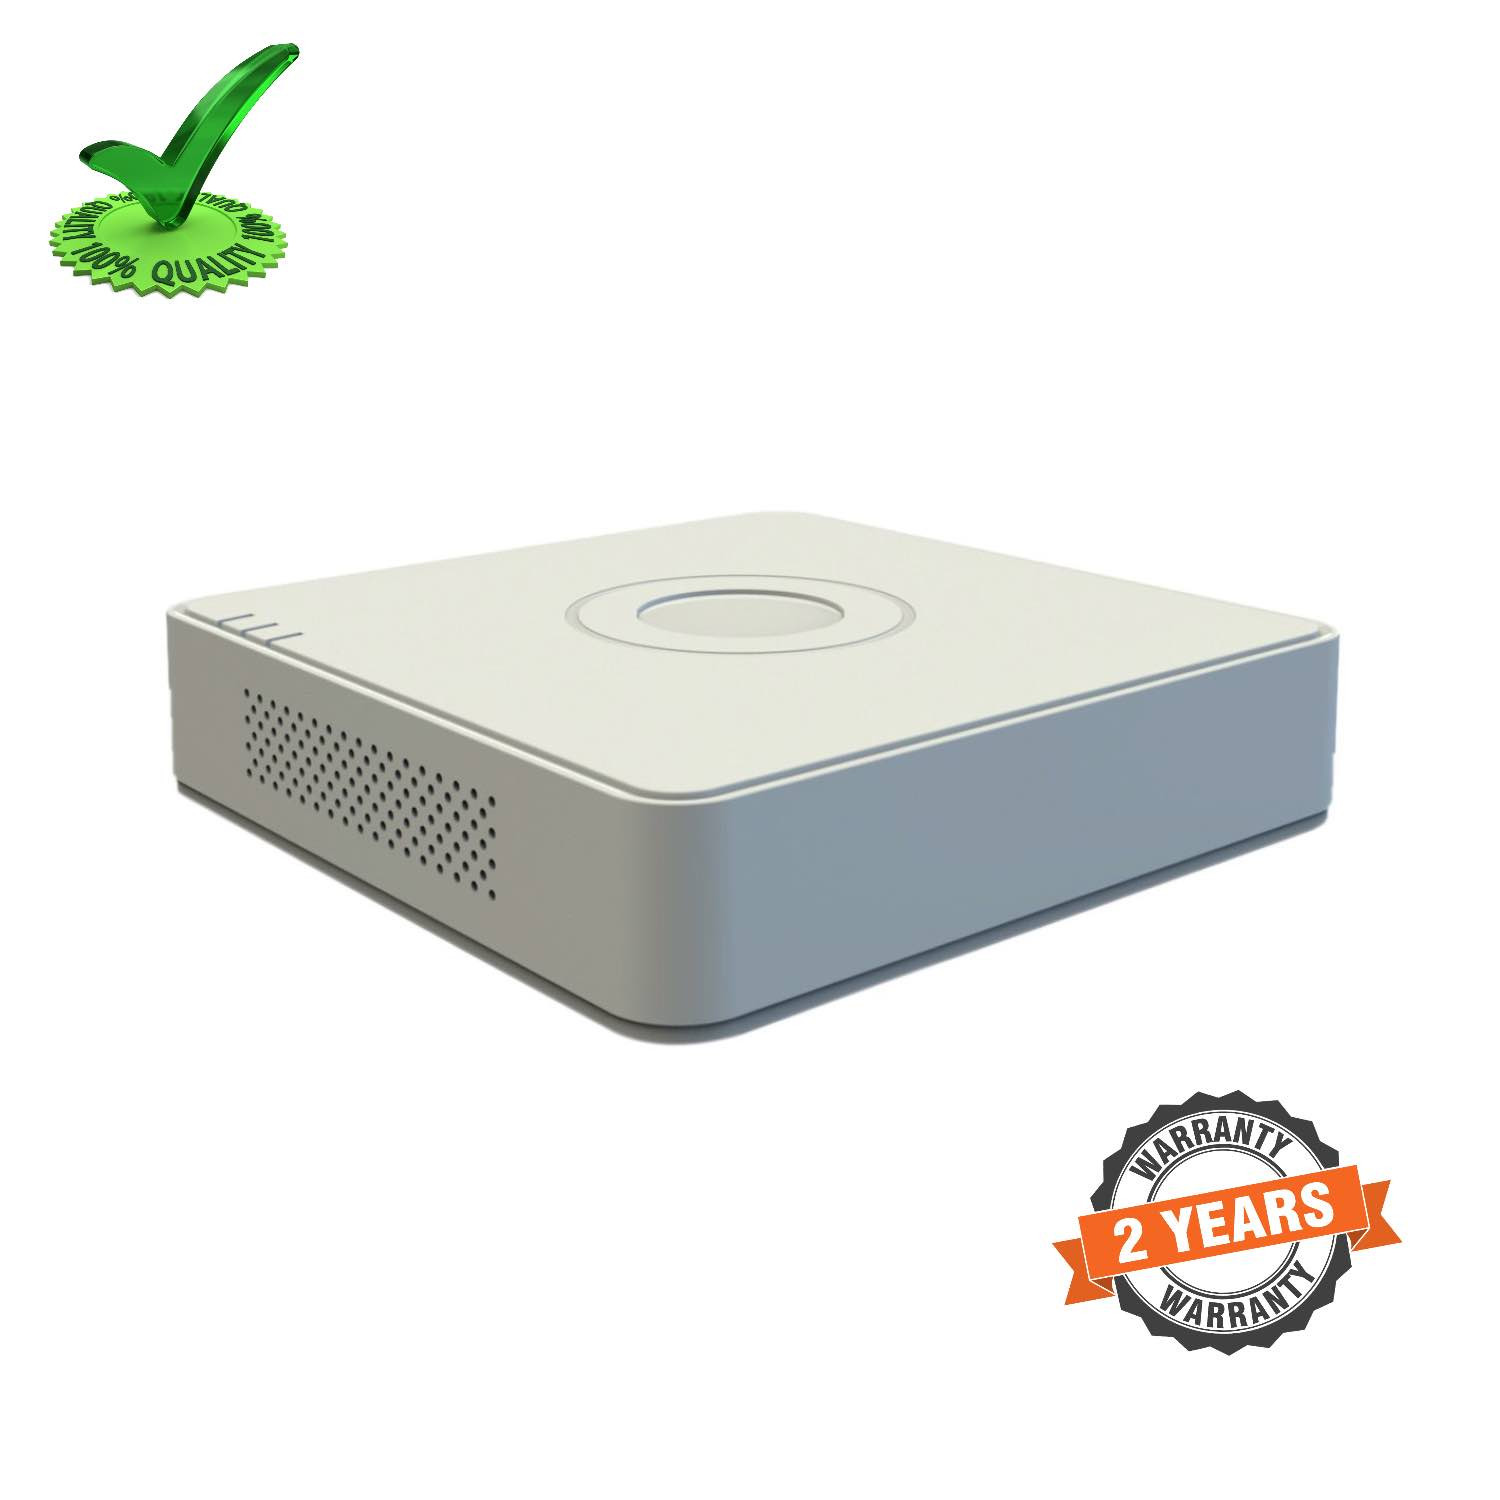 Hikvision DS-7A08HGHI-F1 Eco Model 8ch Turbo HD Dvr